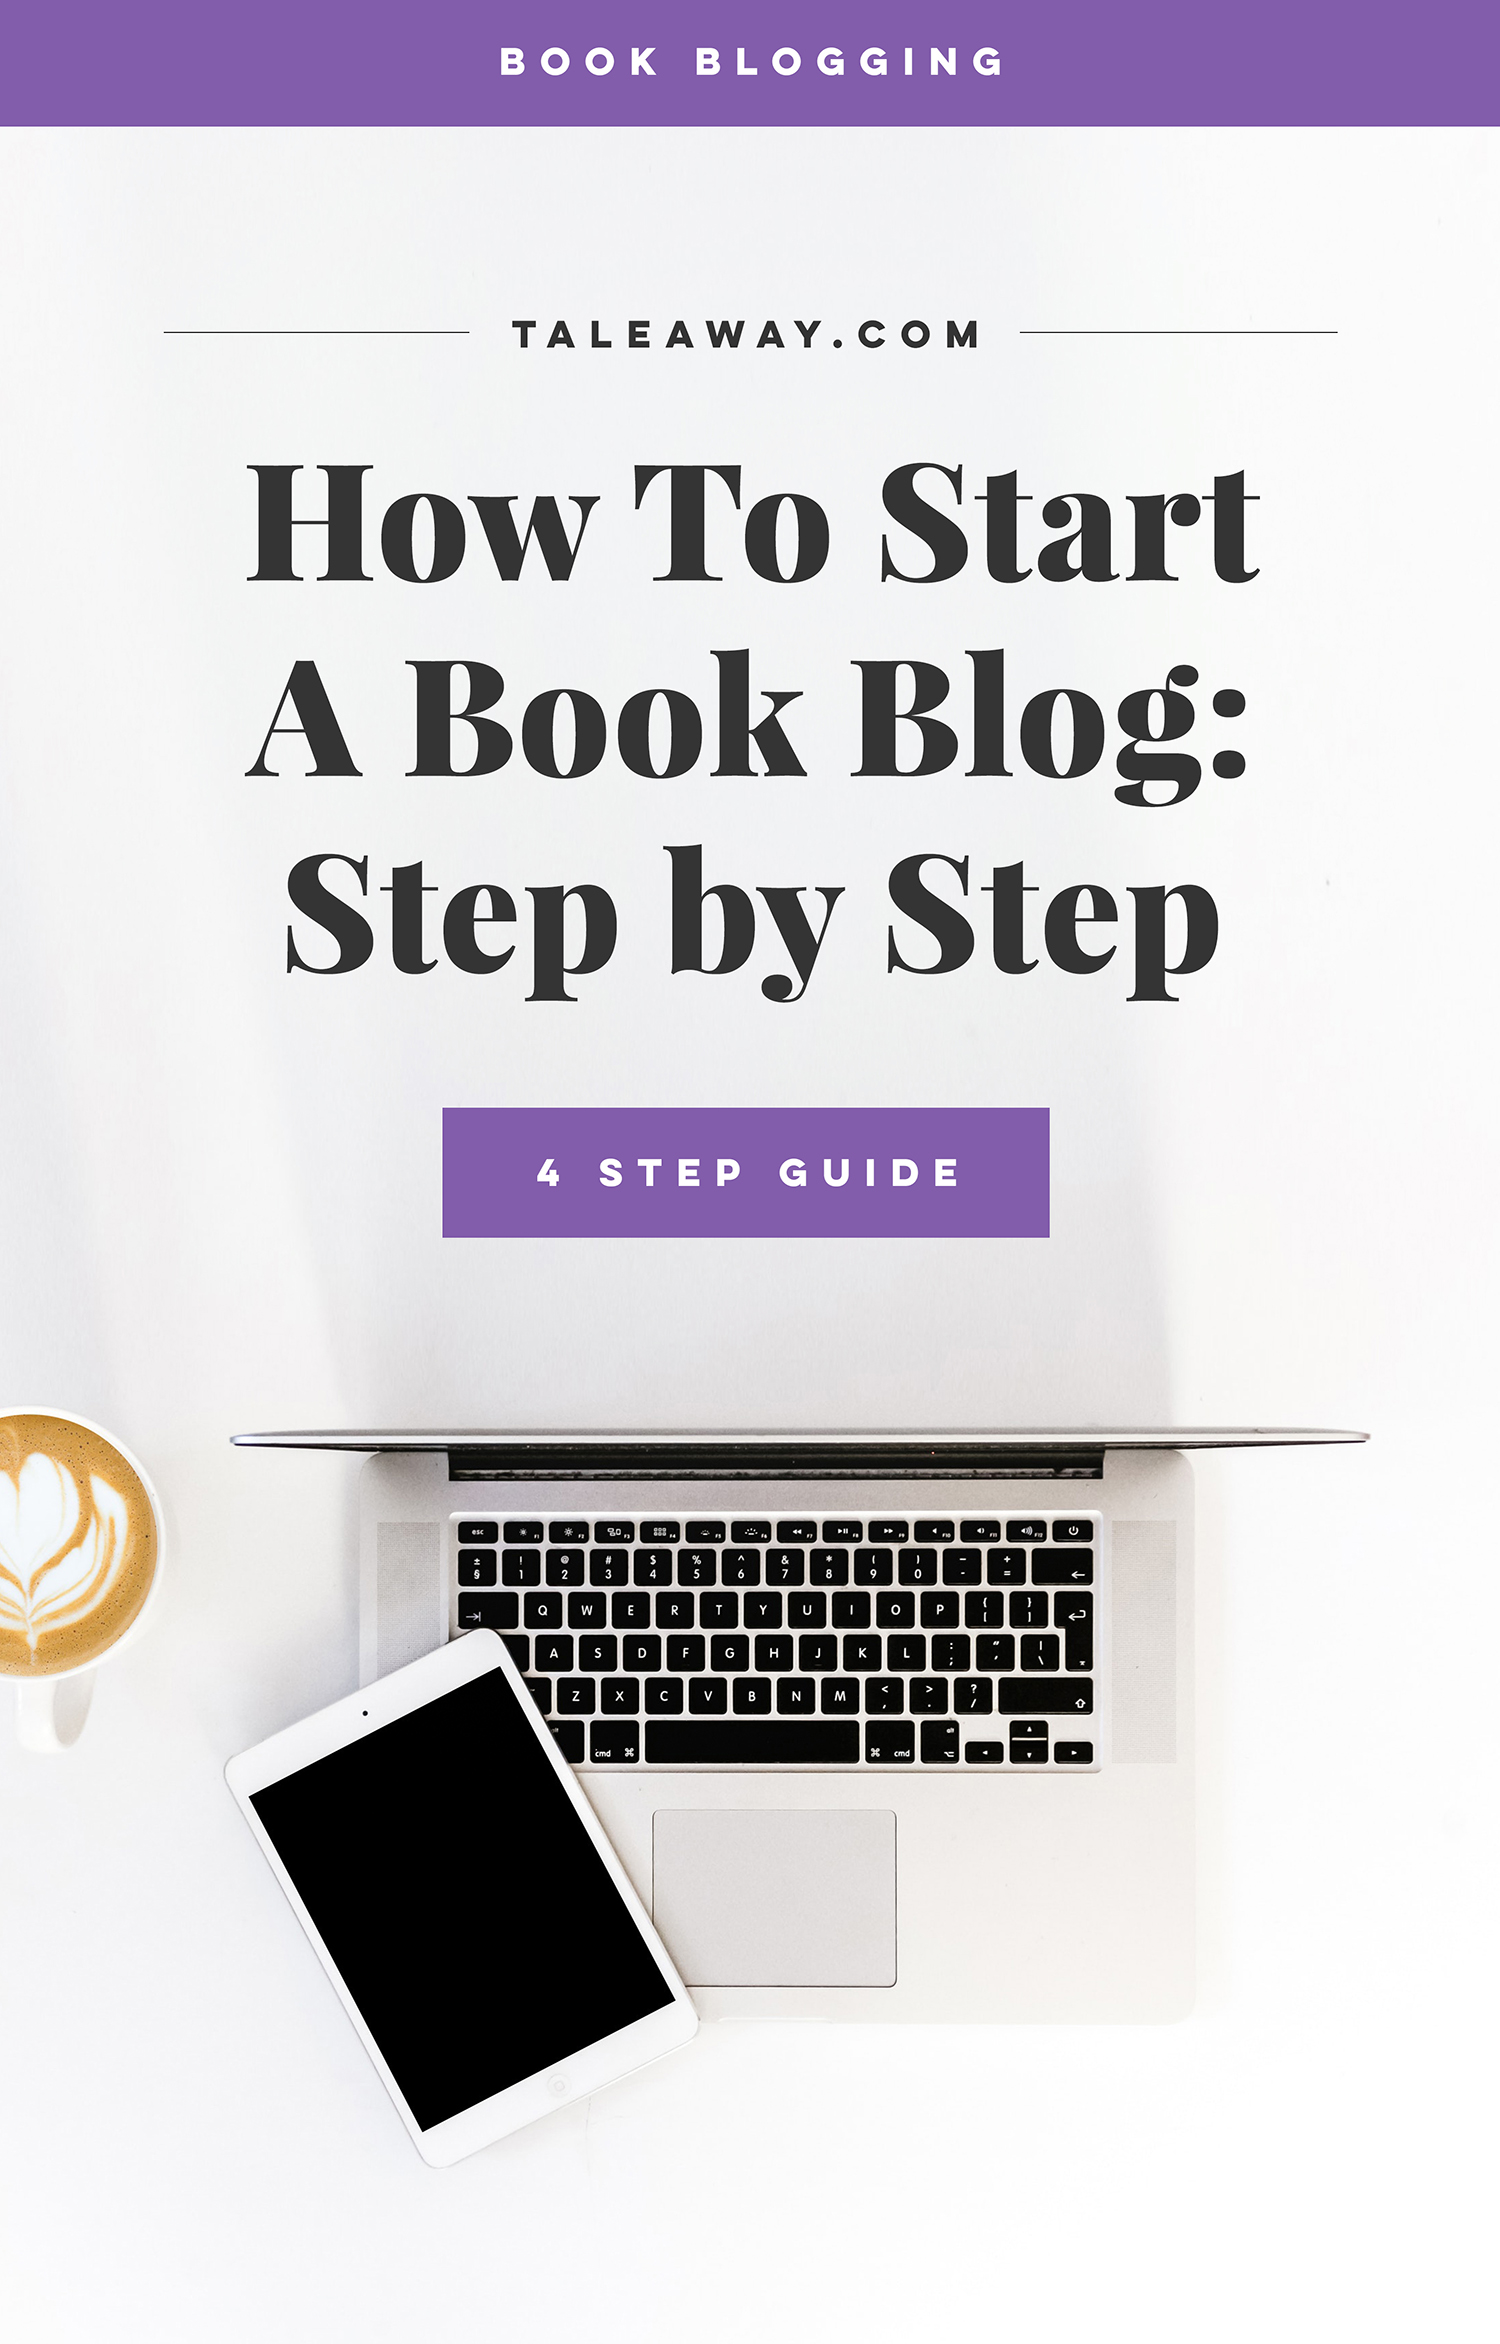 How To Start A Book Blog: In 4 Simple Steps - book blog, book blogging, book blogging for beginners, start a book blog, make a book blog, steps to start a book blog, how to write a book blog, how to get a book blog, book blogs wordpress, wordpress blog, how do I start my book blog, how do you start a reading blog, reading blog, start a reading blog, how to become a book blogger, book blog ideas, domain search, domain name, cheap domain, how to start a blog, how to create a blog, how to make a blog, blog step by step, how to blog, how to set up a blog, start your own blog, how to start a website